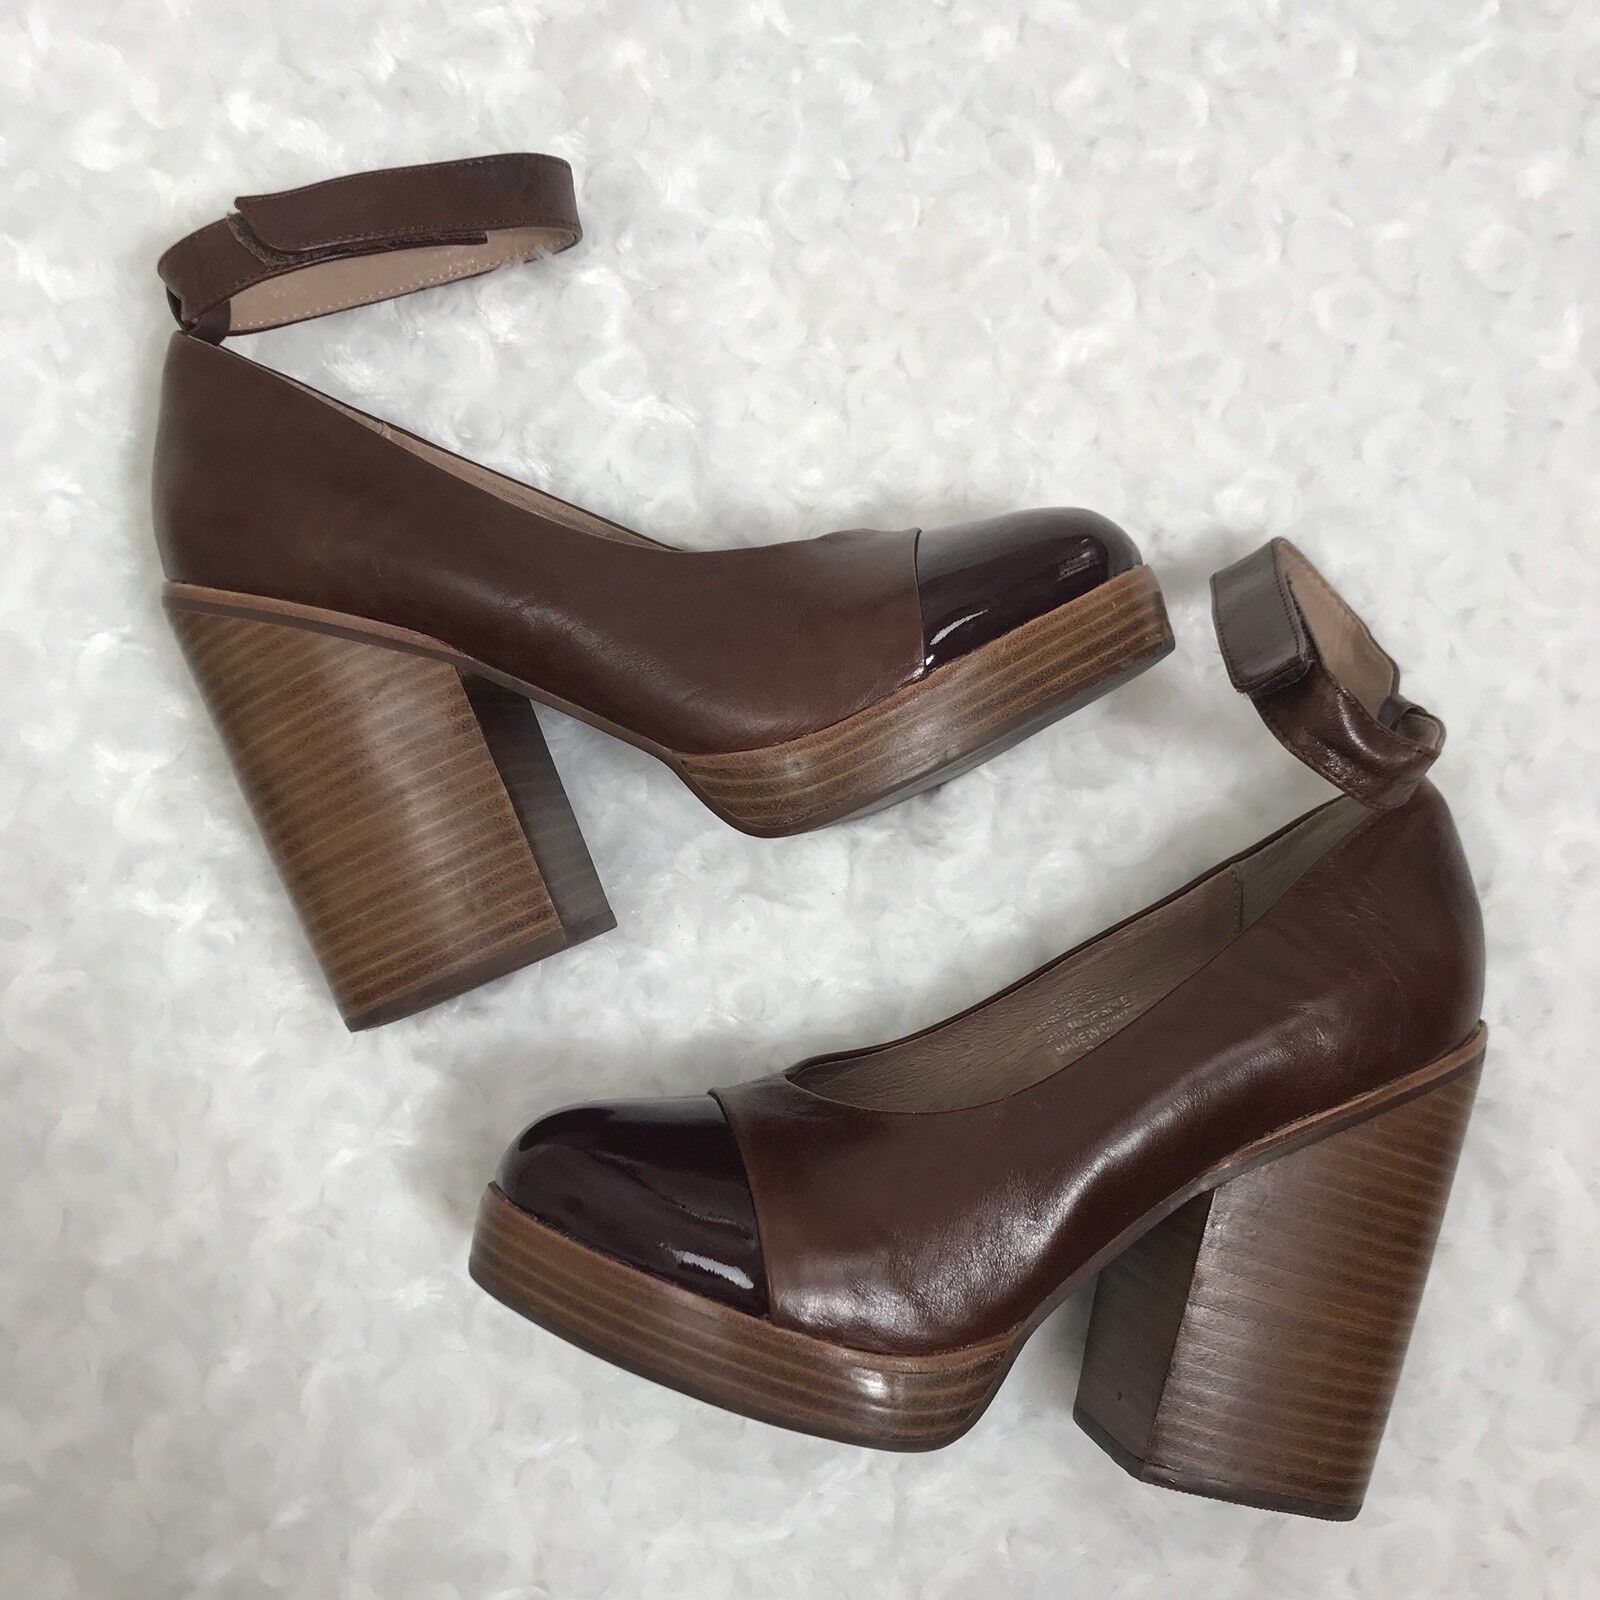 Jeffrey Campbell 8.5 Braun Leder Wooden Rothes Platform Stacked Pump High Heel